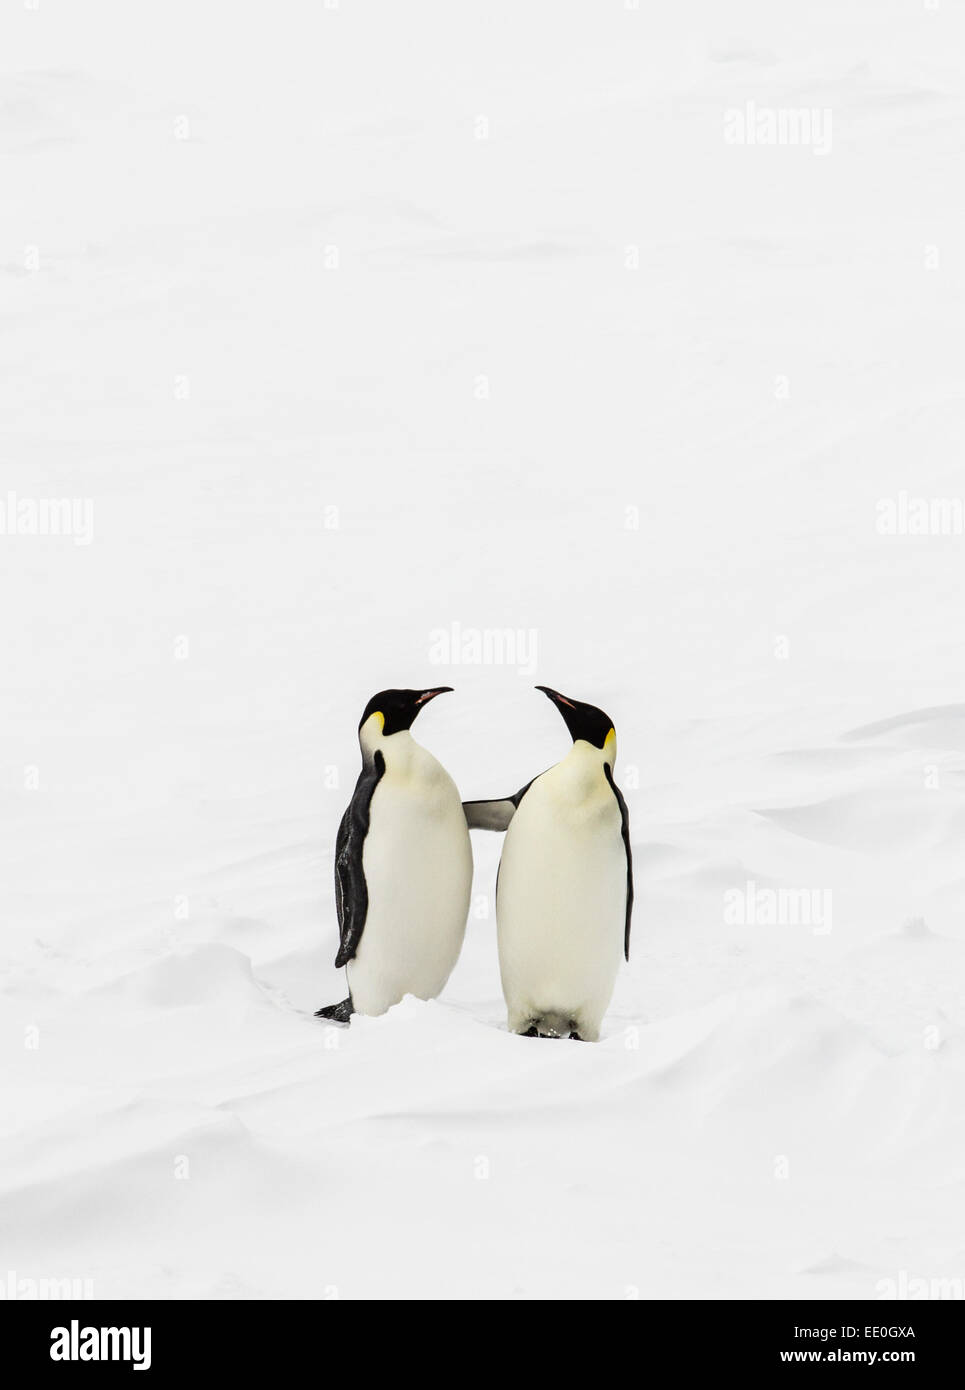 Two emperor penguens standing up and touching each other - Stock Image